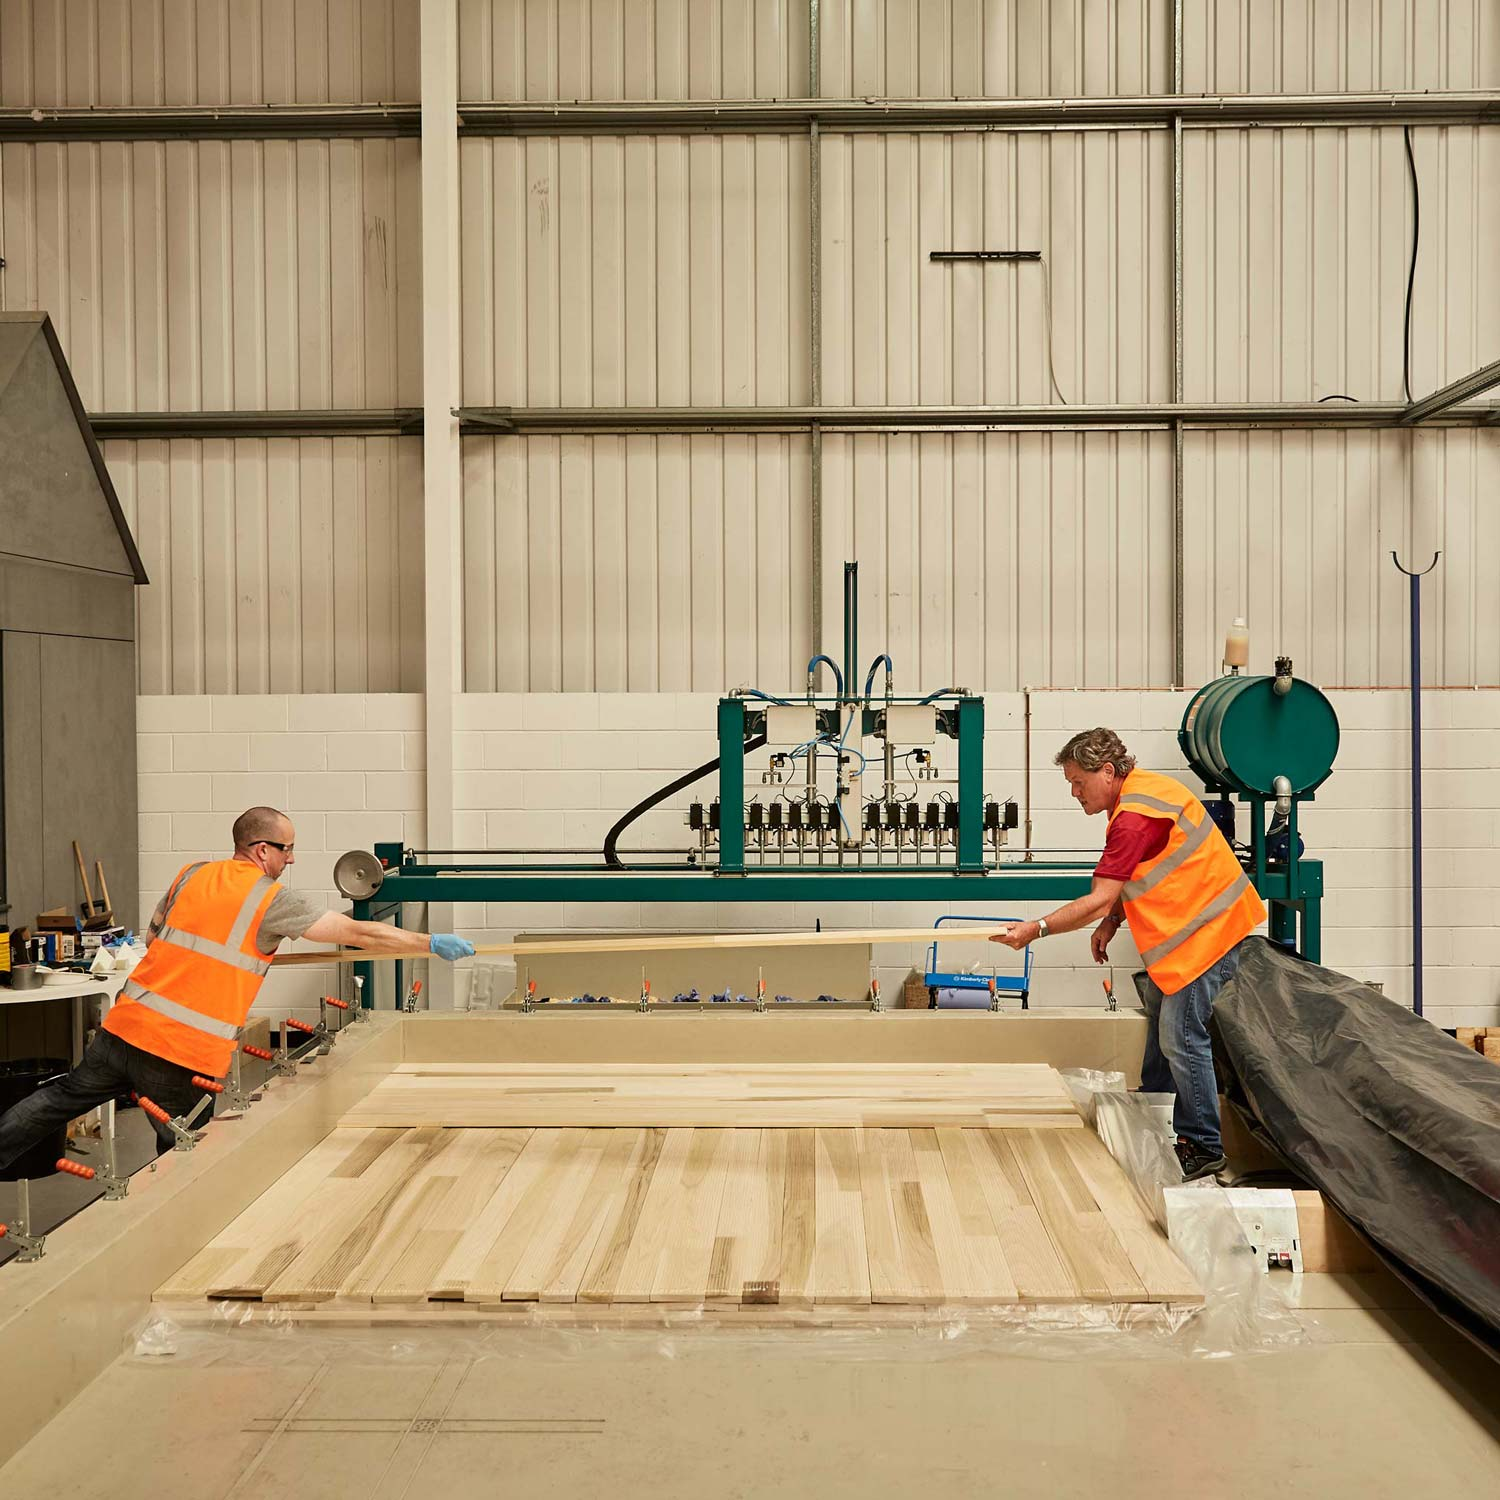 Two woodworkers constructing cross laminated timber sheets in the workshop